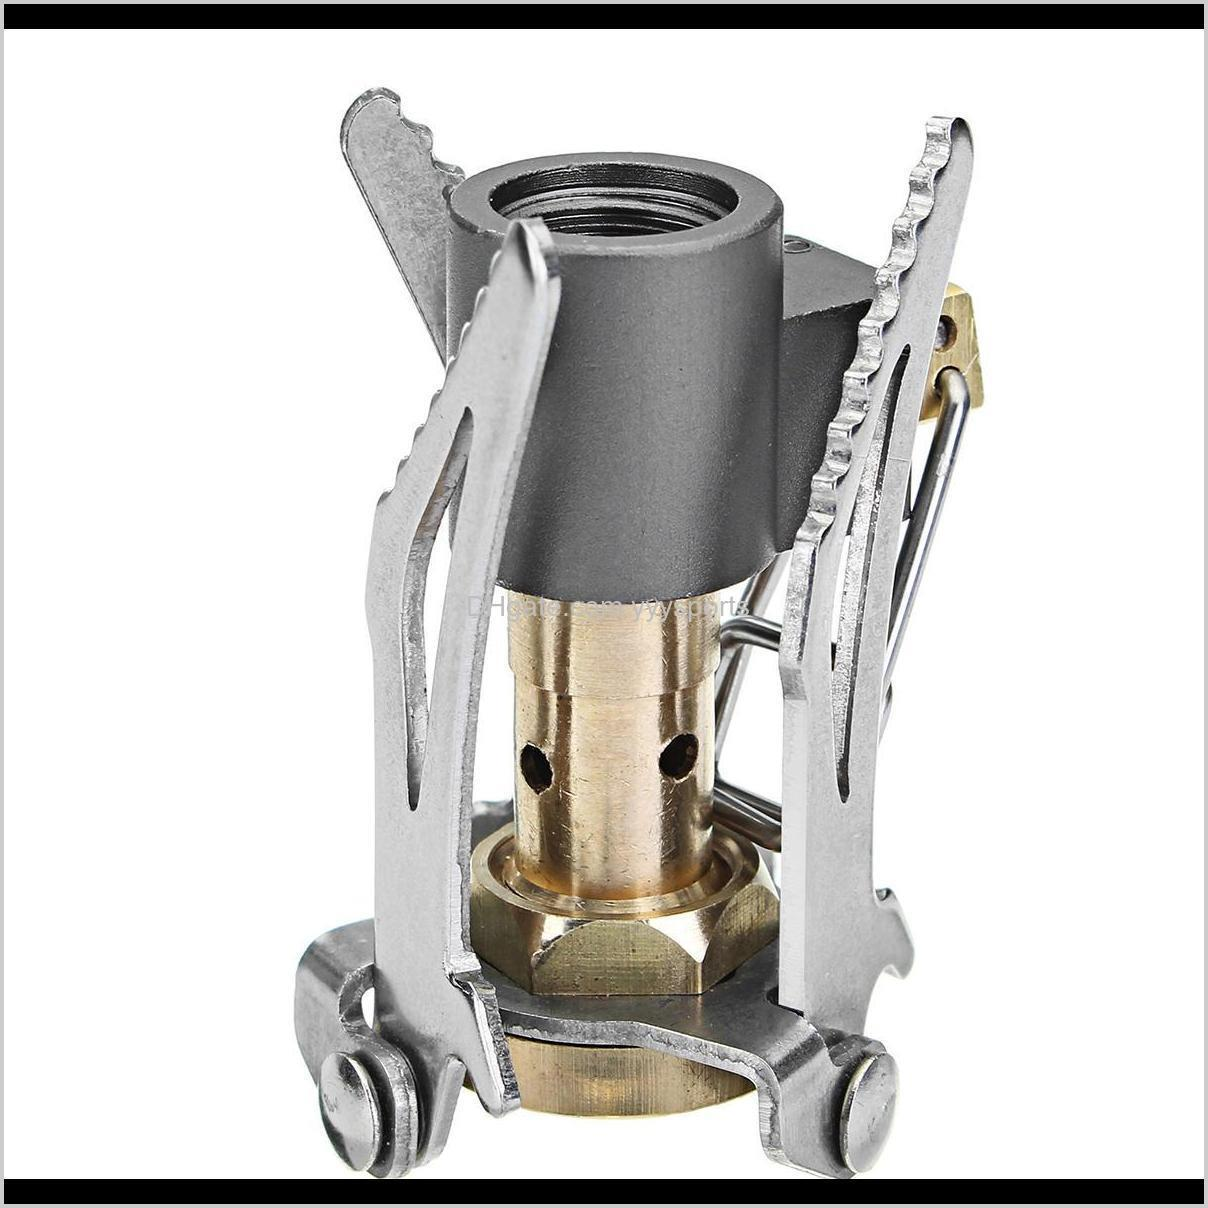 ultra-light and portable cooking stove 3000w portable ultralight mini camping picnic butane gas cooking furnace easy to carry outdoors